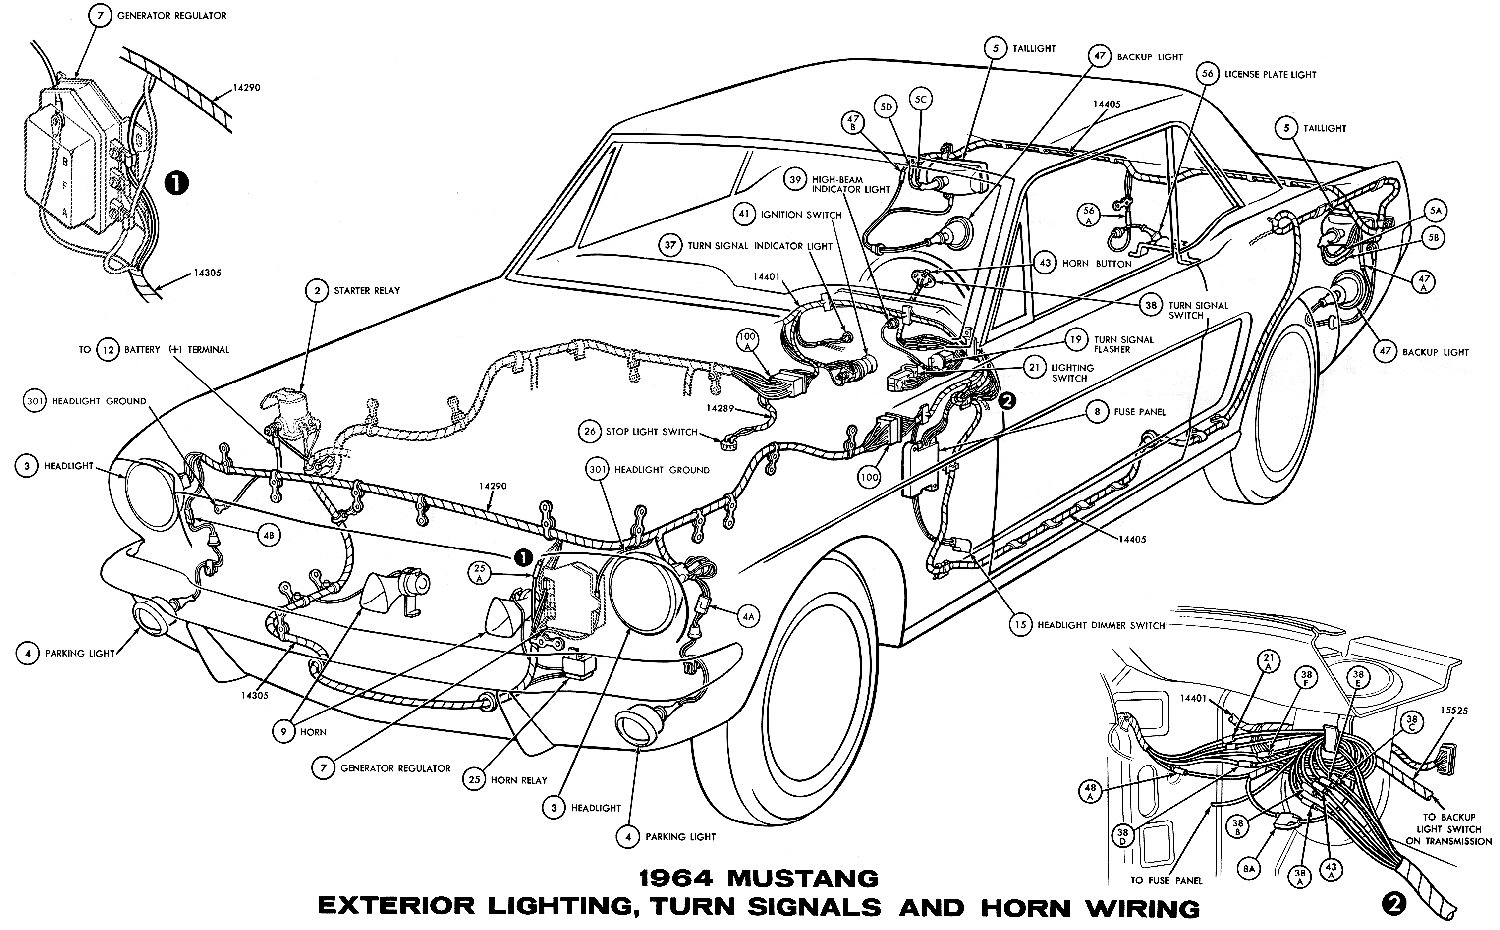 64 Ford F100 Headlight Wiring Library 1968 F250 Diagram 1964 Mustang Exterior Lighting Turn Signals And Horns Pictorial Or Schematic